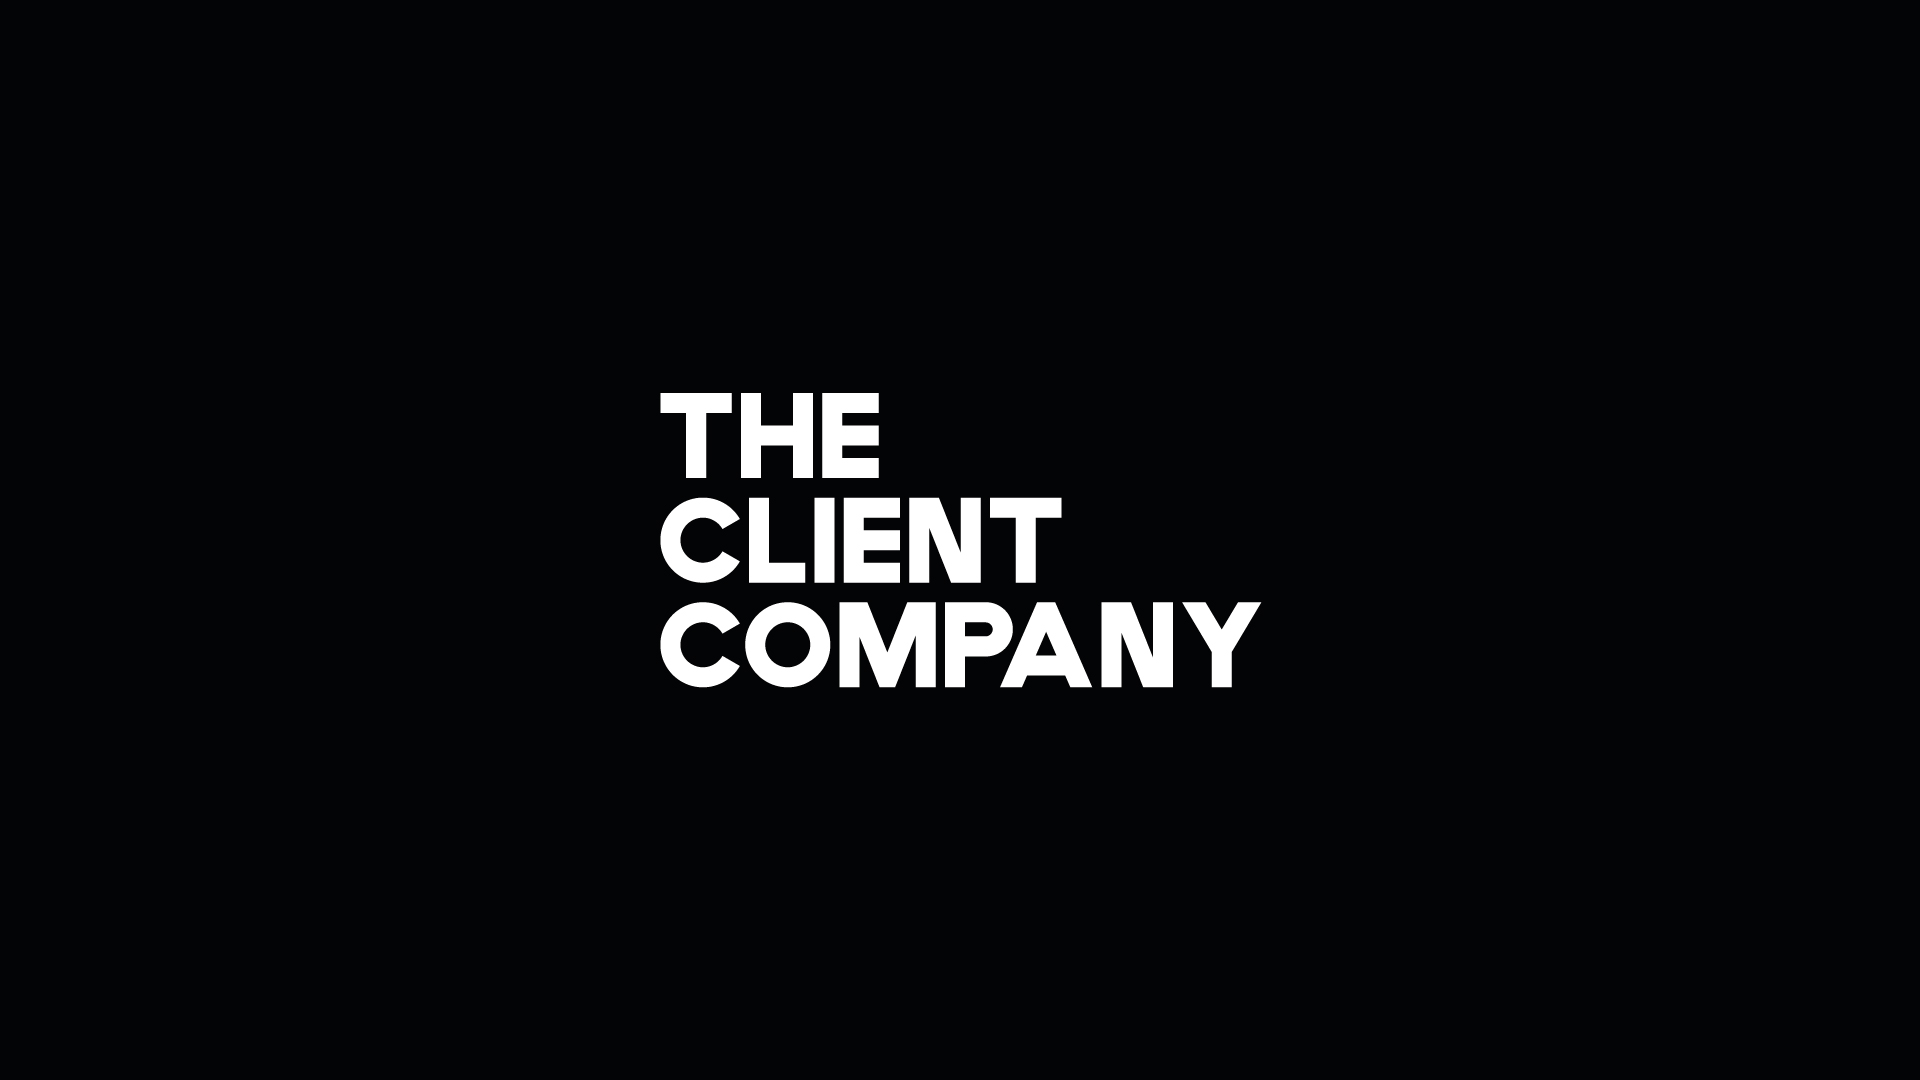 The Client Company Black